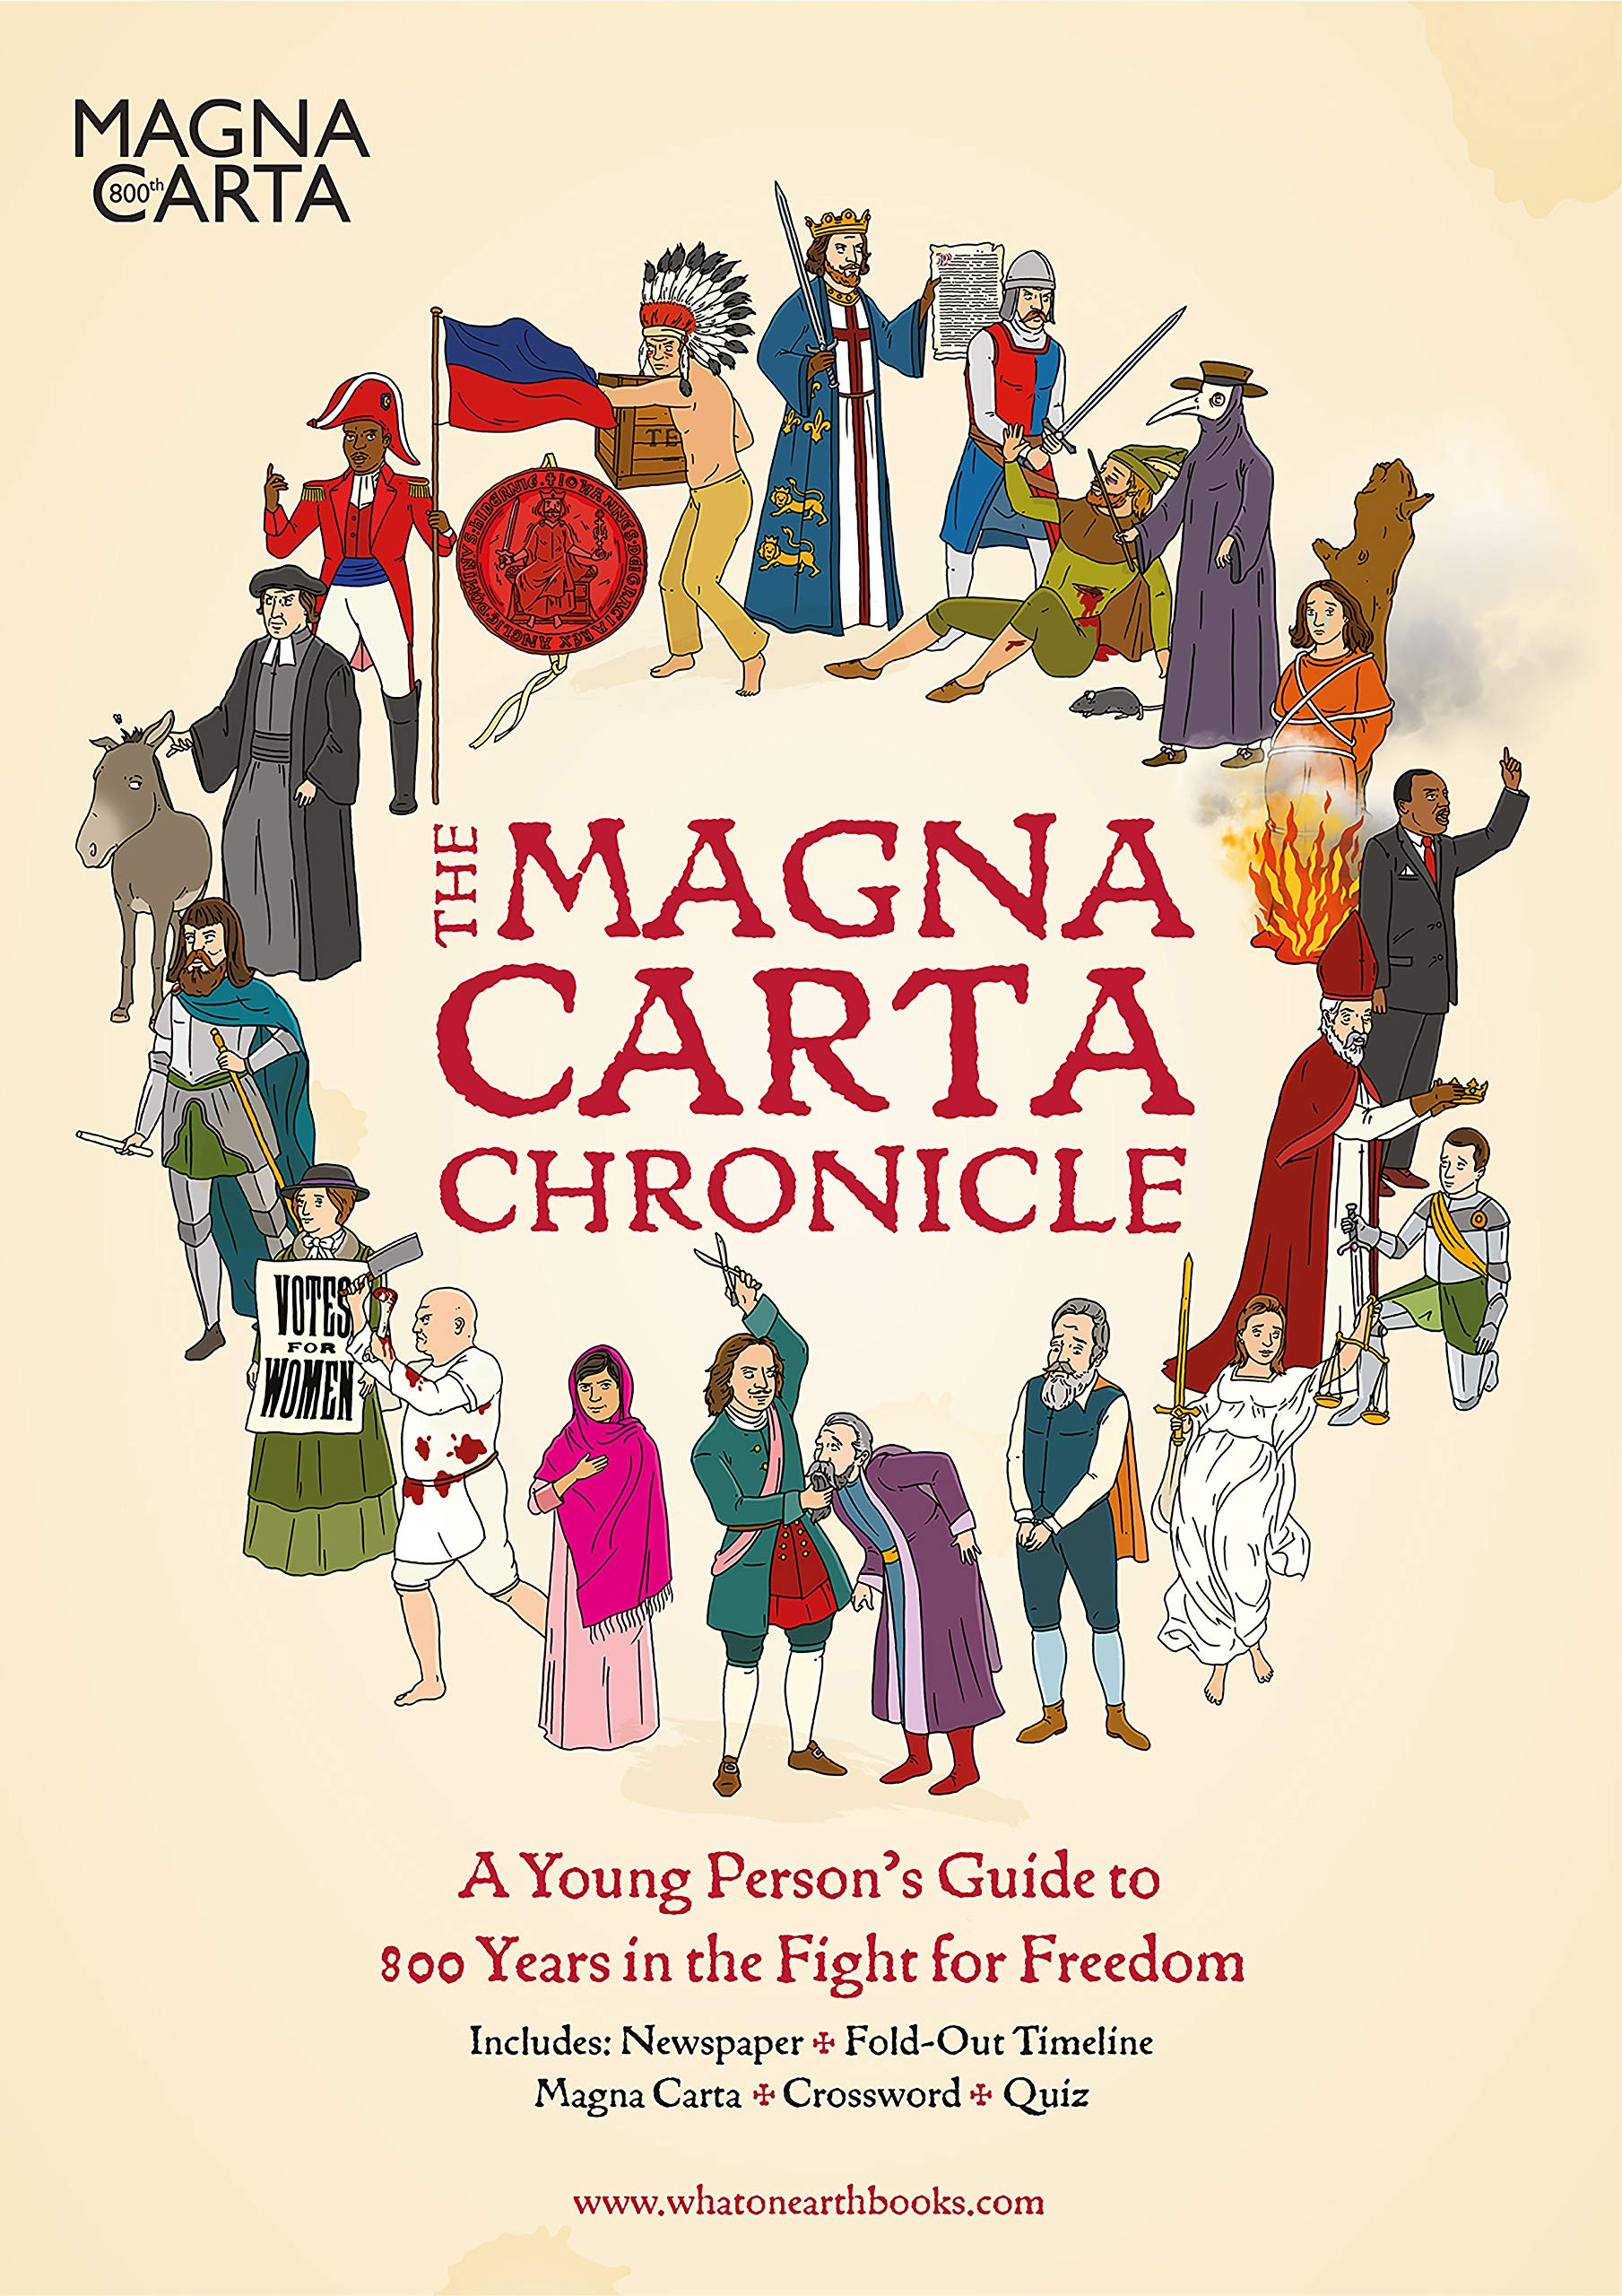 The Magna Carta Chronicle  A Young Person's Guide To 800 Years In The Fight For Freedom